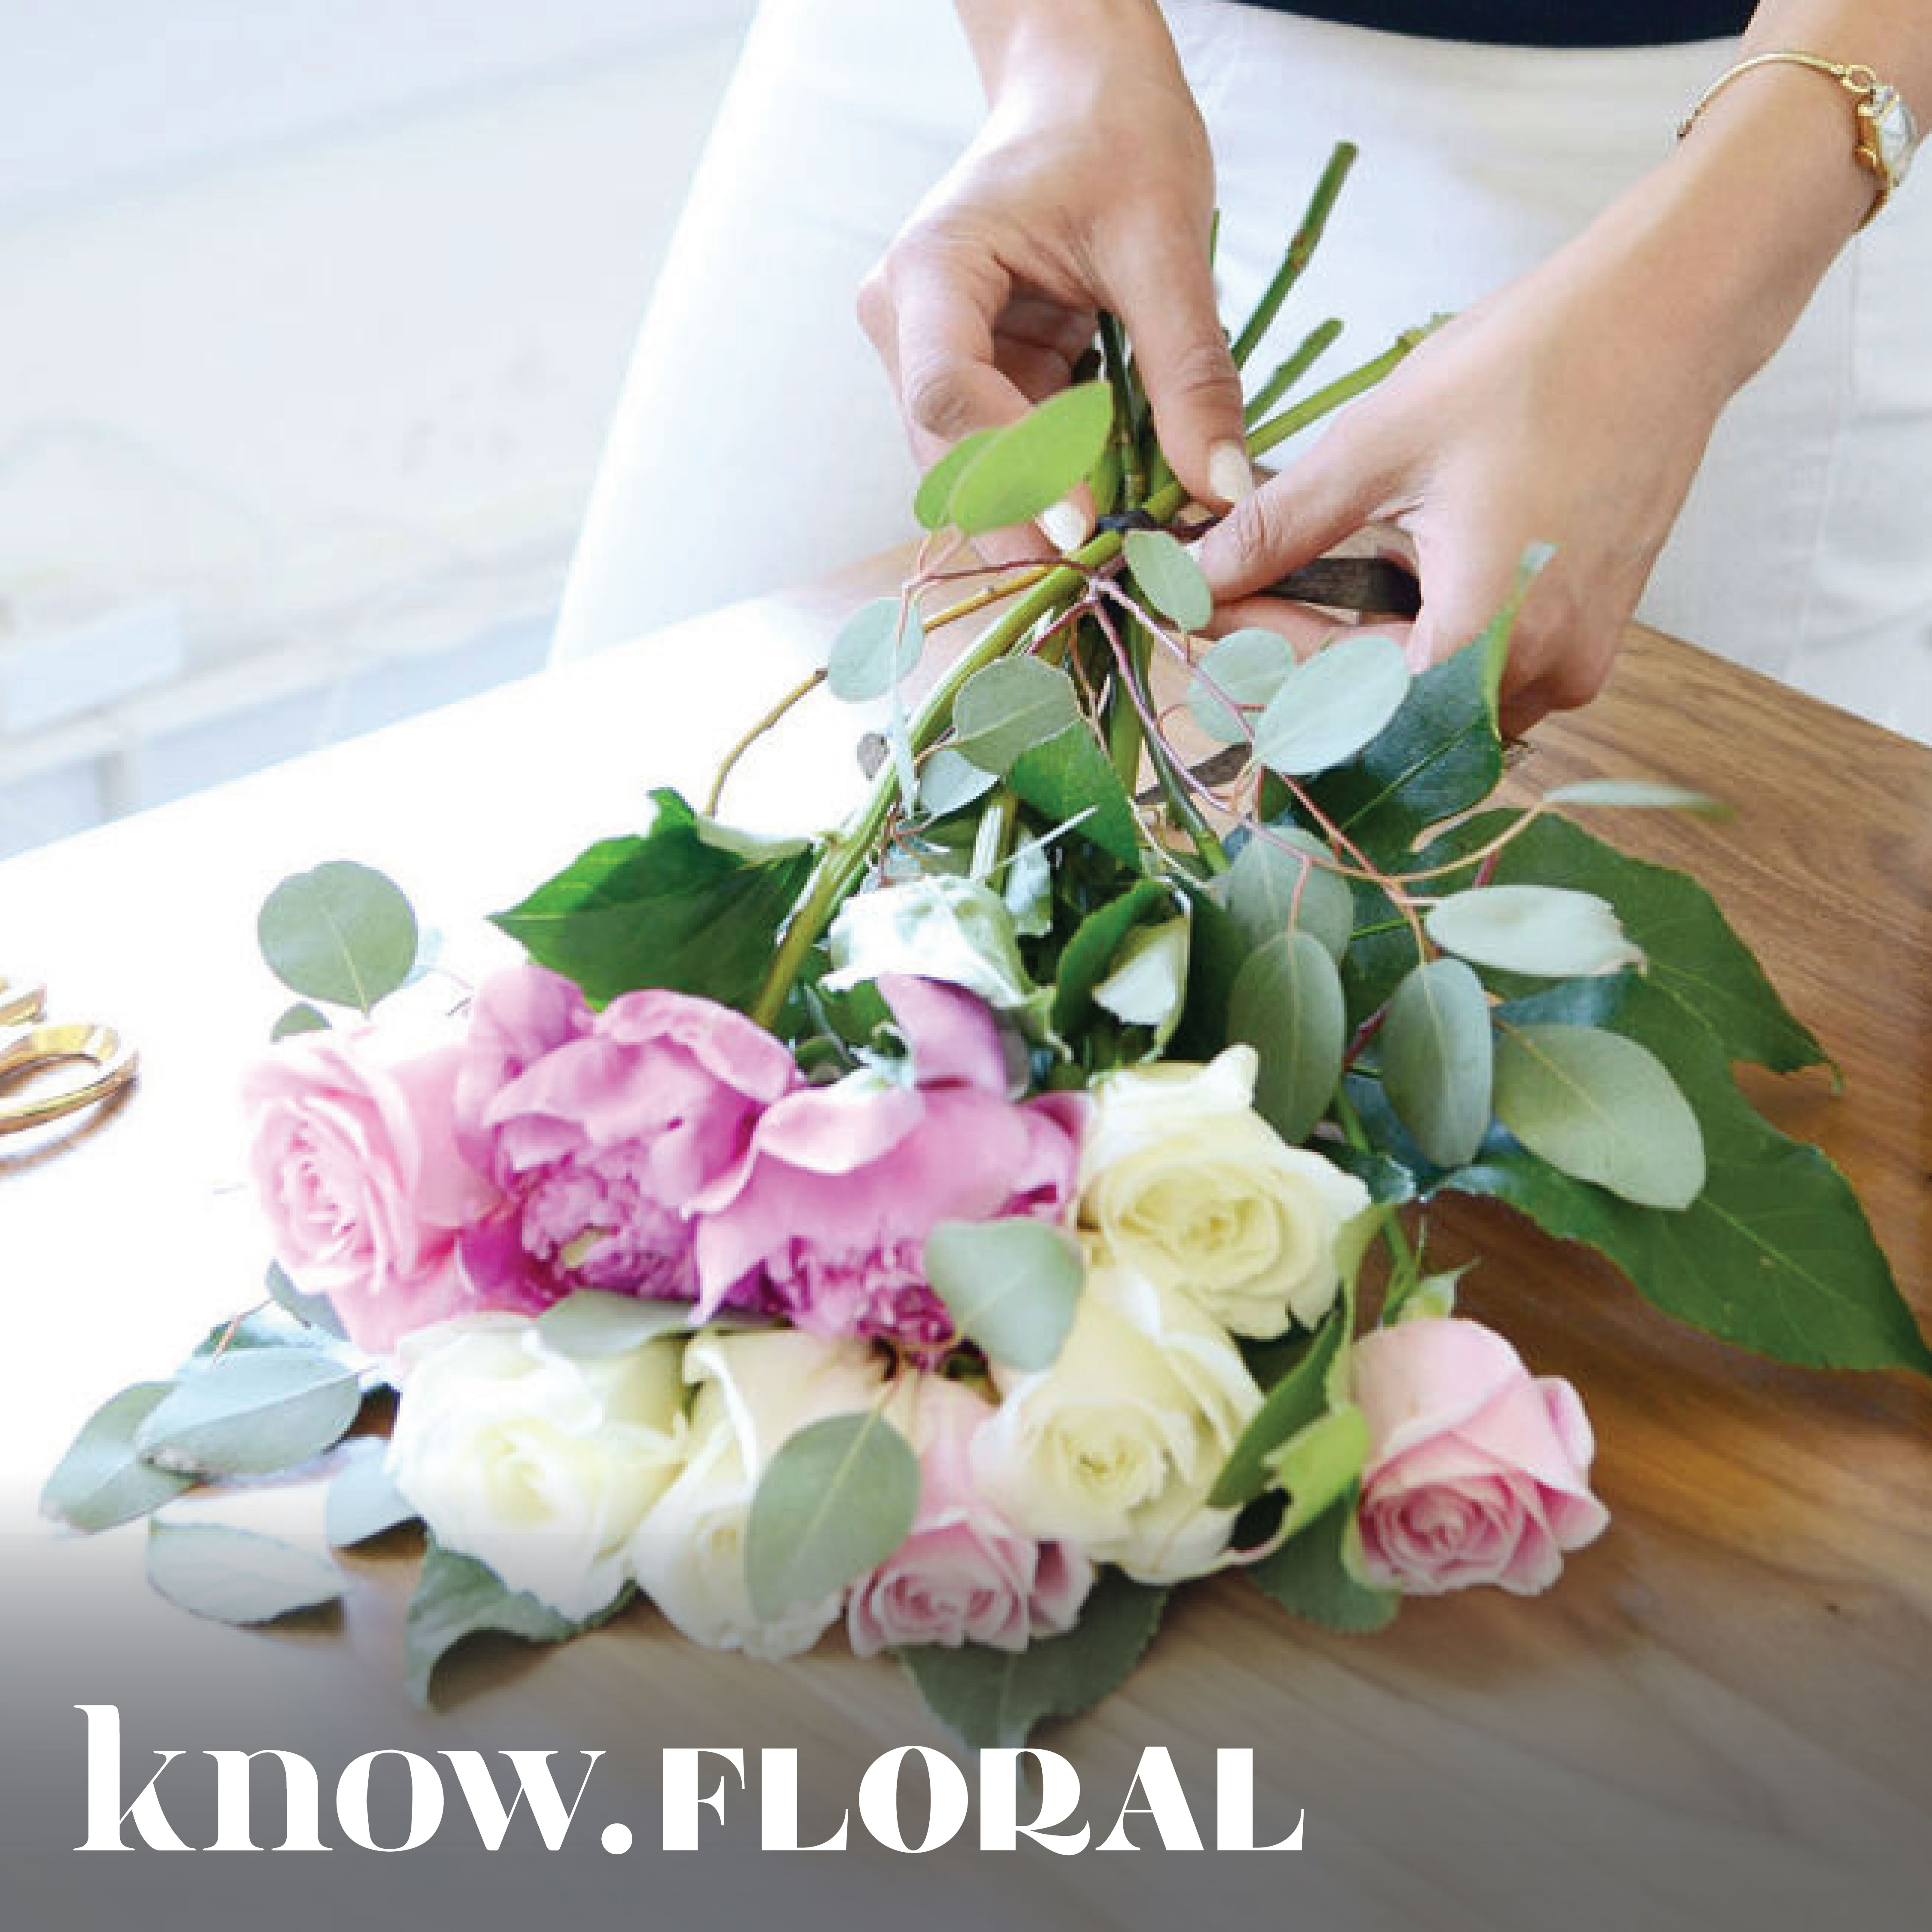 know.floral posts-13-14